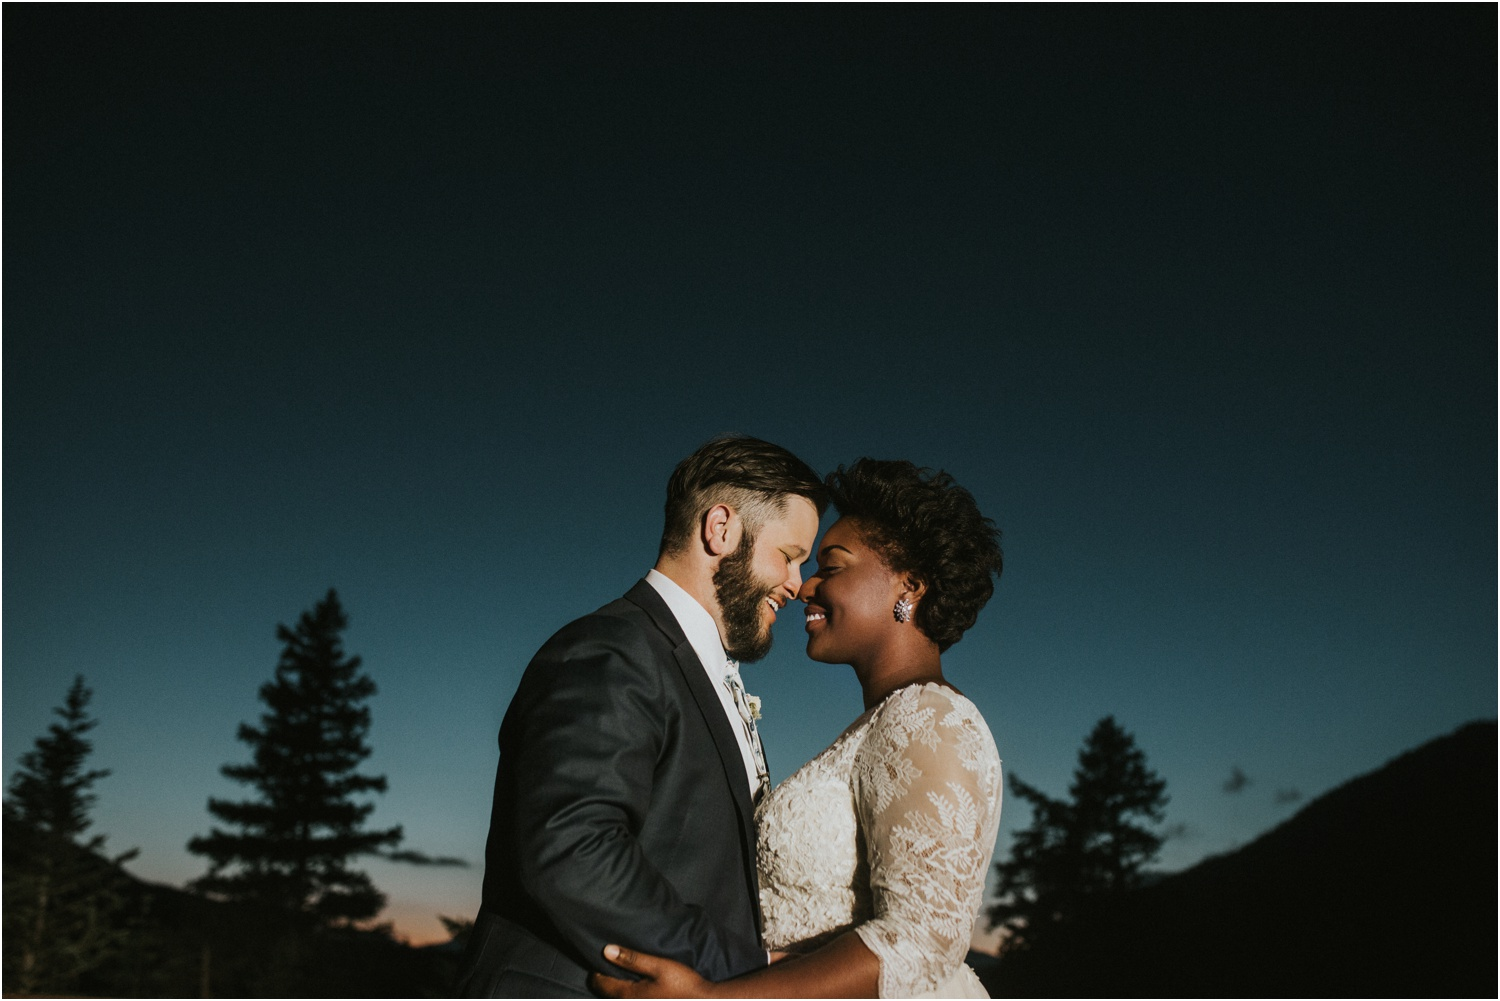 lovestoriesco-amber-phinisee-seattle-mount-rainier-elopement_0098.jpg